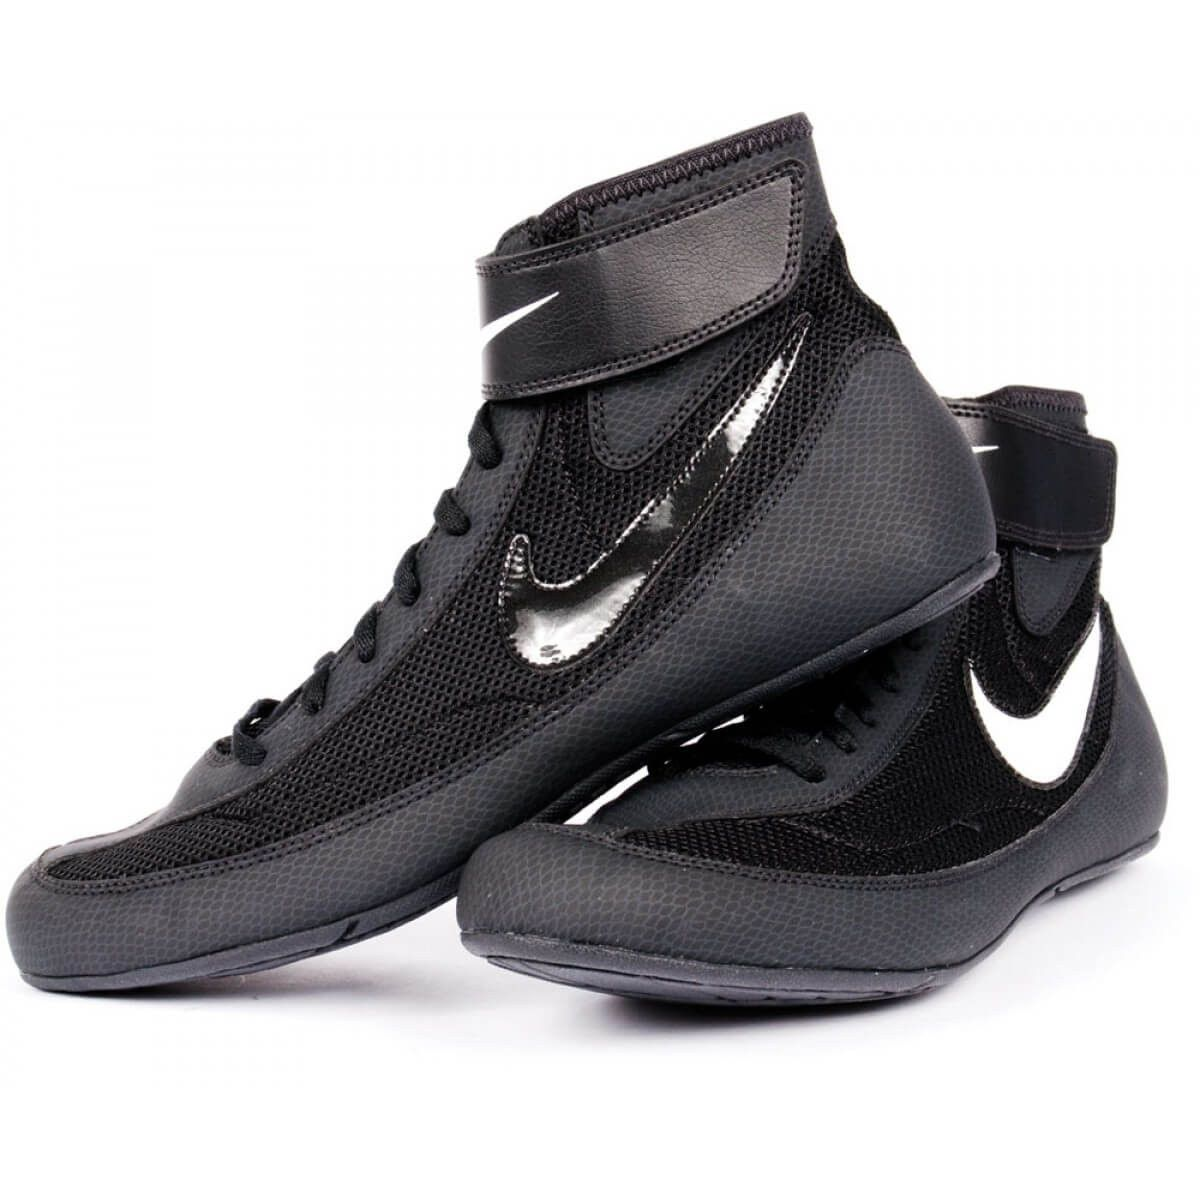 Nike Speedsweep Boxing Shoes  1272a7a64